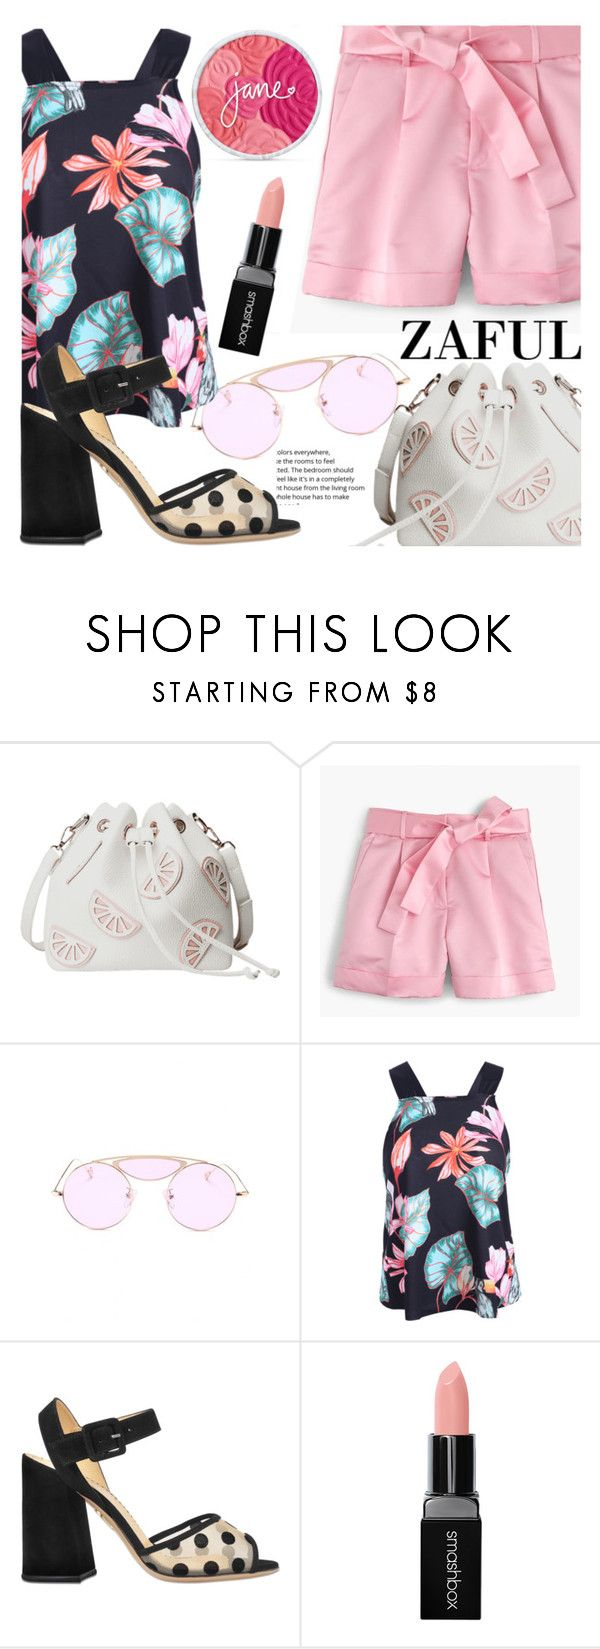 """""""Pinky Summer"""" by fattie-zara ❤ liked on Polyvore featuring J.Crew, Charlotte Olympia, Smashbox and zaful"""